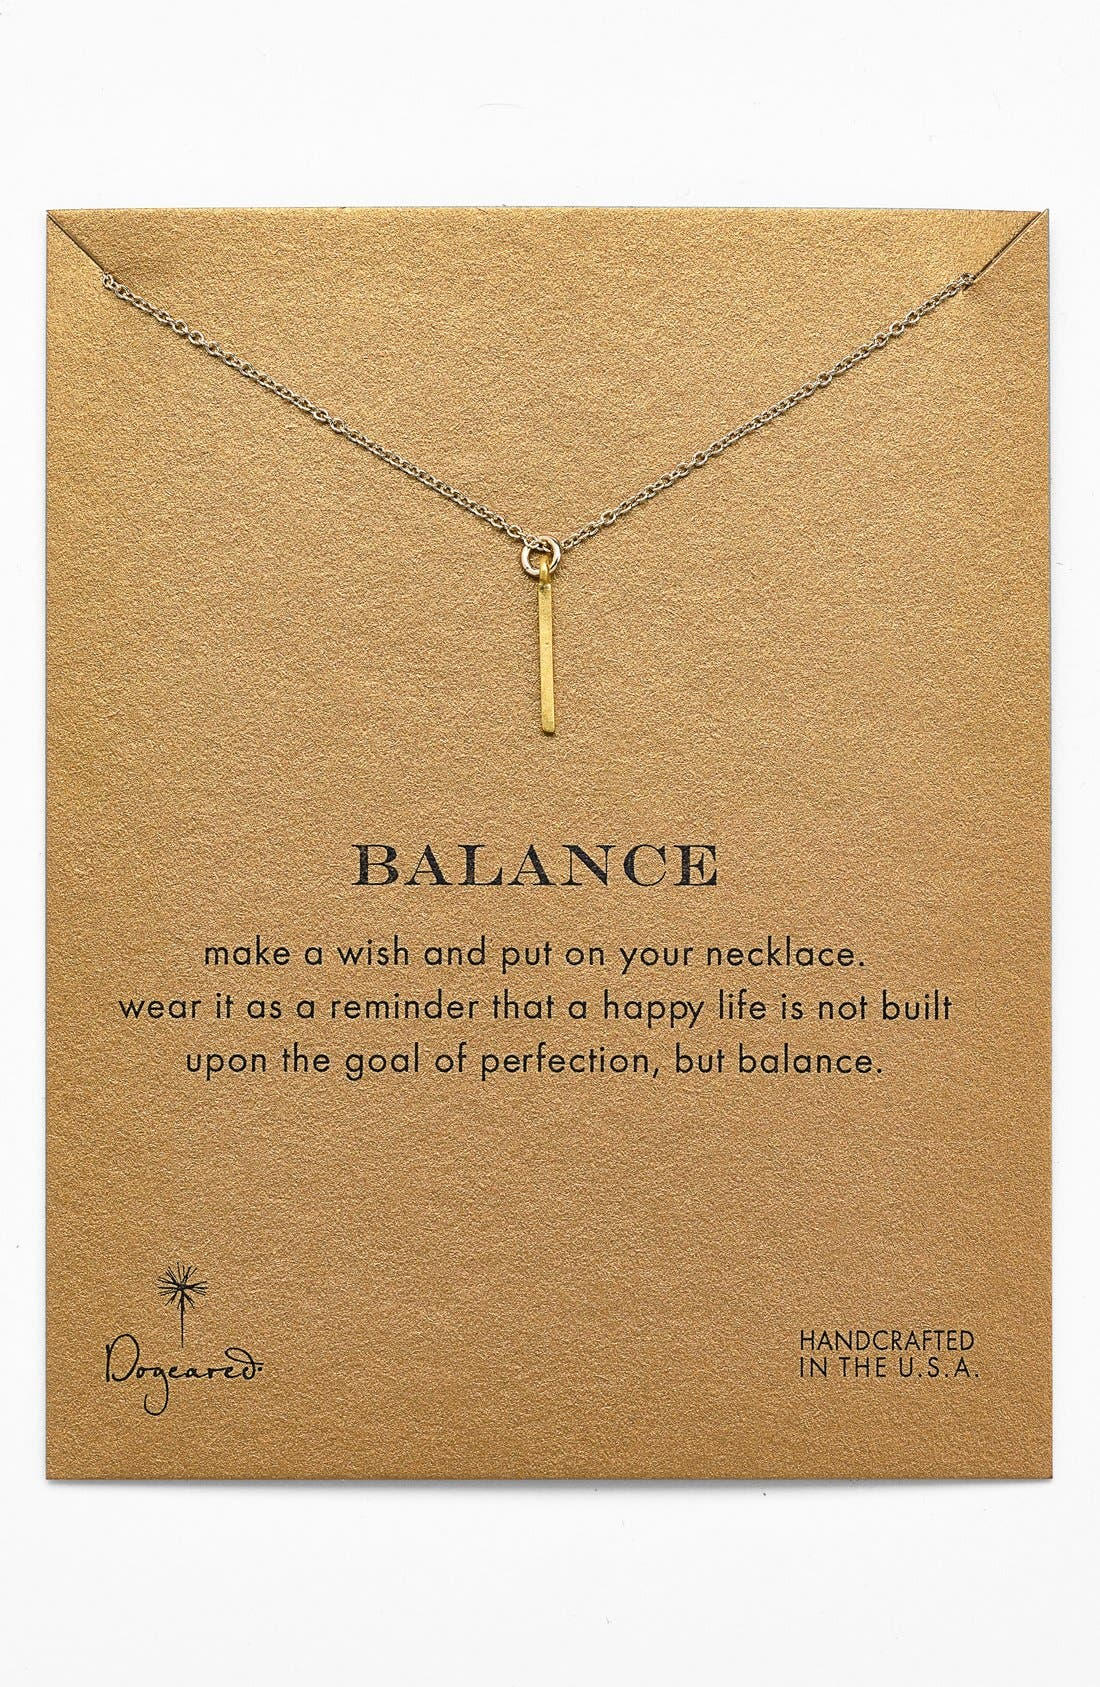 Alternate Image 1 Selected - Dogeared 'Reminder - Balance' Boxed Pendant Necklace